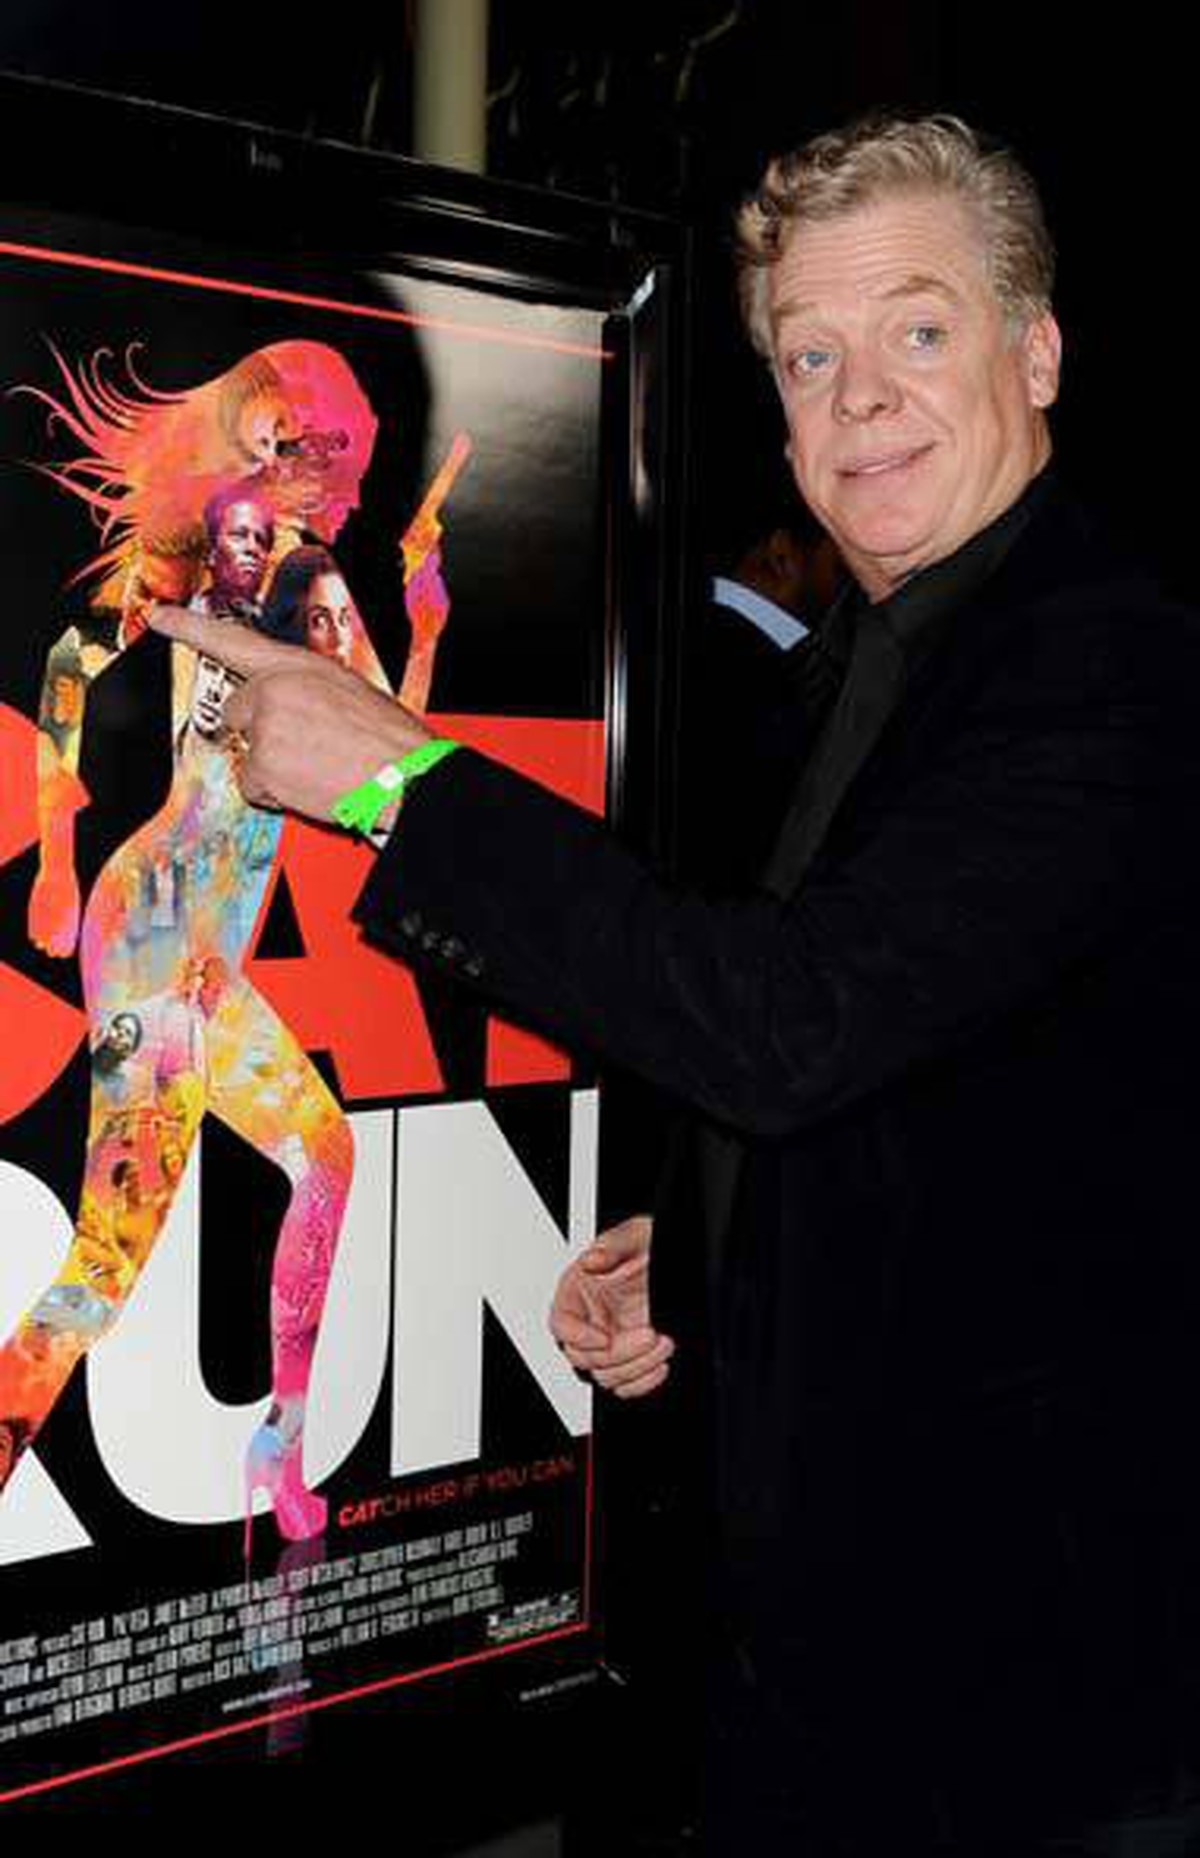 """Actor Christopher McDonald arrives at the premiere of """"Cat Run"""" in Los Angeles last week, a movie in which he plays the part of a tattoo on some woman's upper left arm."""